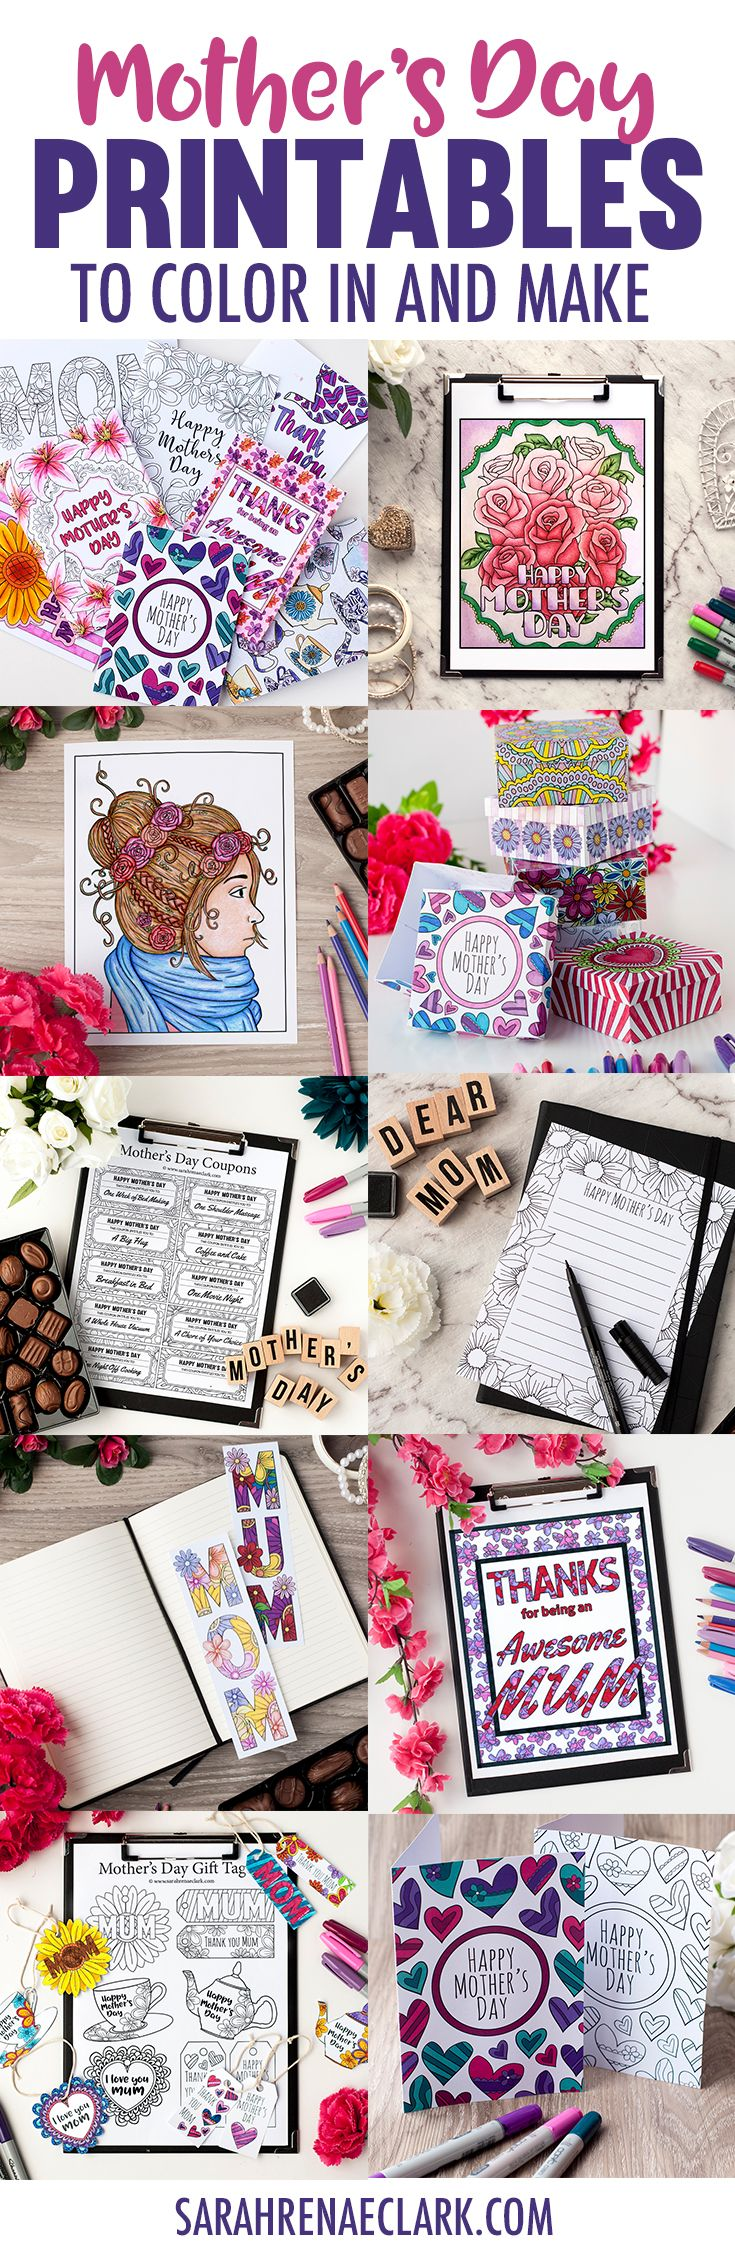 Huge collection of Mother's Day printables and Mother's Day crafts: Mother's Day coloring pages, Mother's Day cards, Mother's Day gift boxes, Mother's Day gift tags, Mother's Day stationery, Mother's Day coupons, Mother's Day bookmarks and a printable adult coloring book for moms! Get it all at www.sarahrenaeclark.com